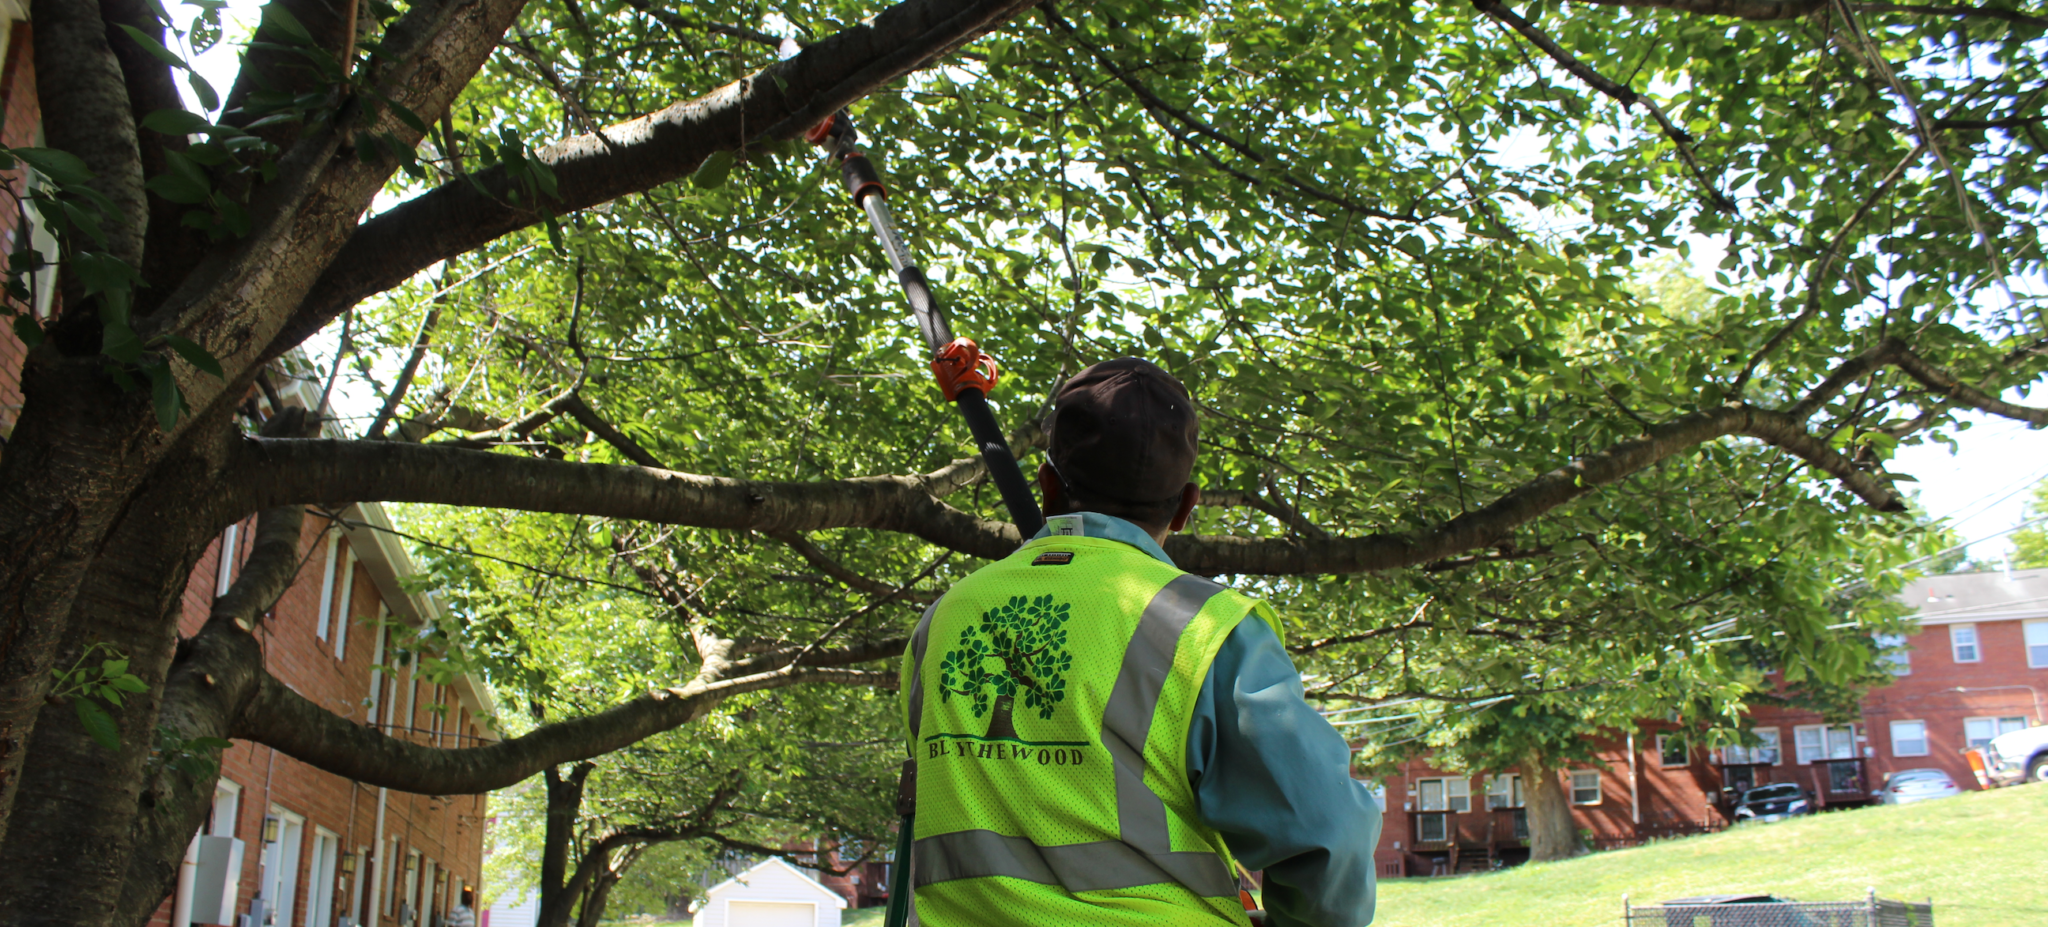 Pruning trees is important for safety by removing dead or overgrown branches and maintaing their shape.